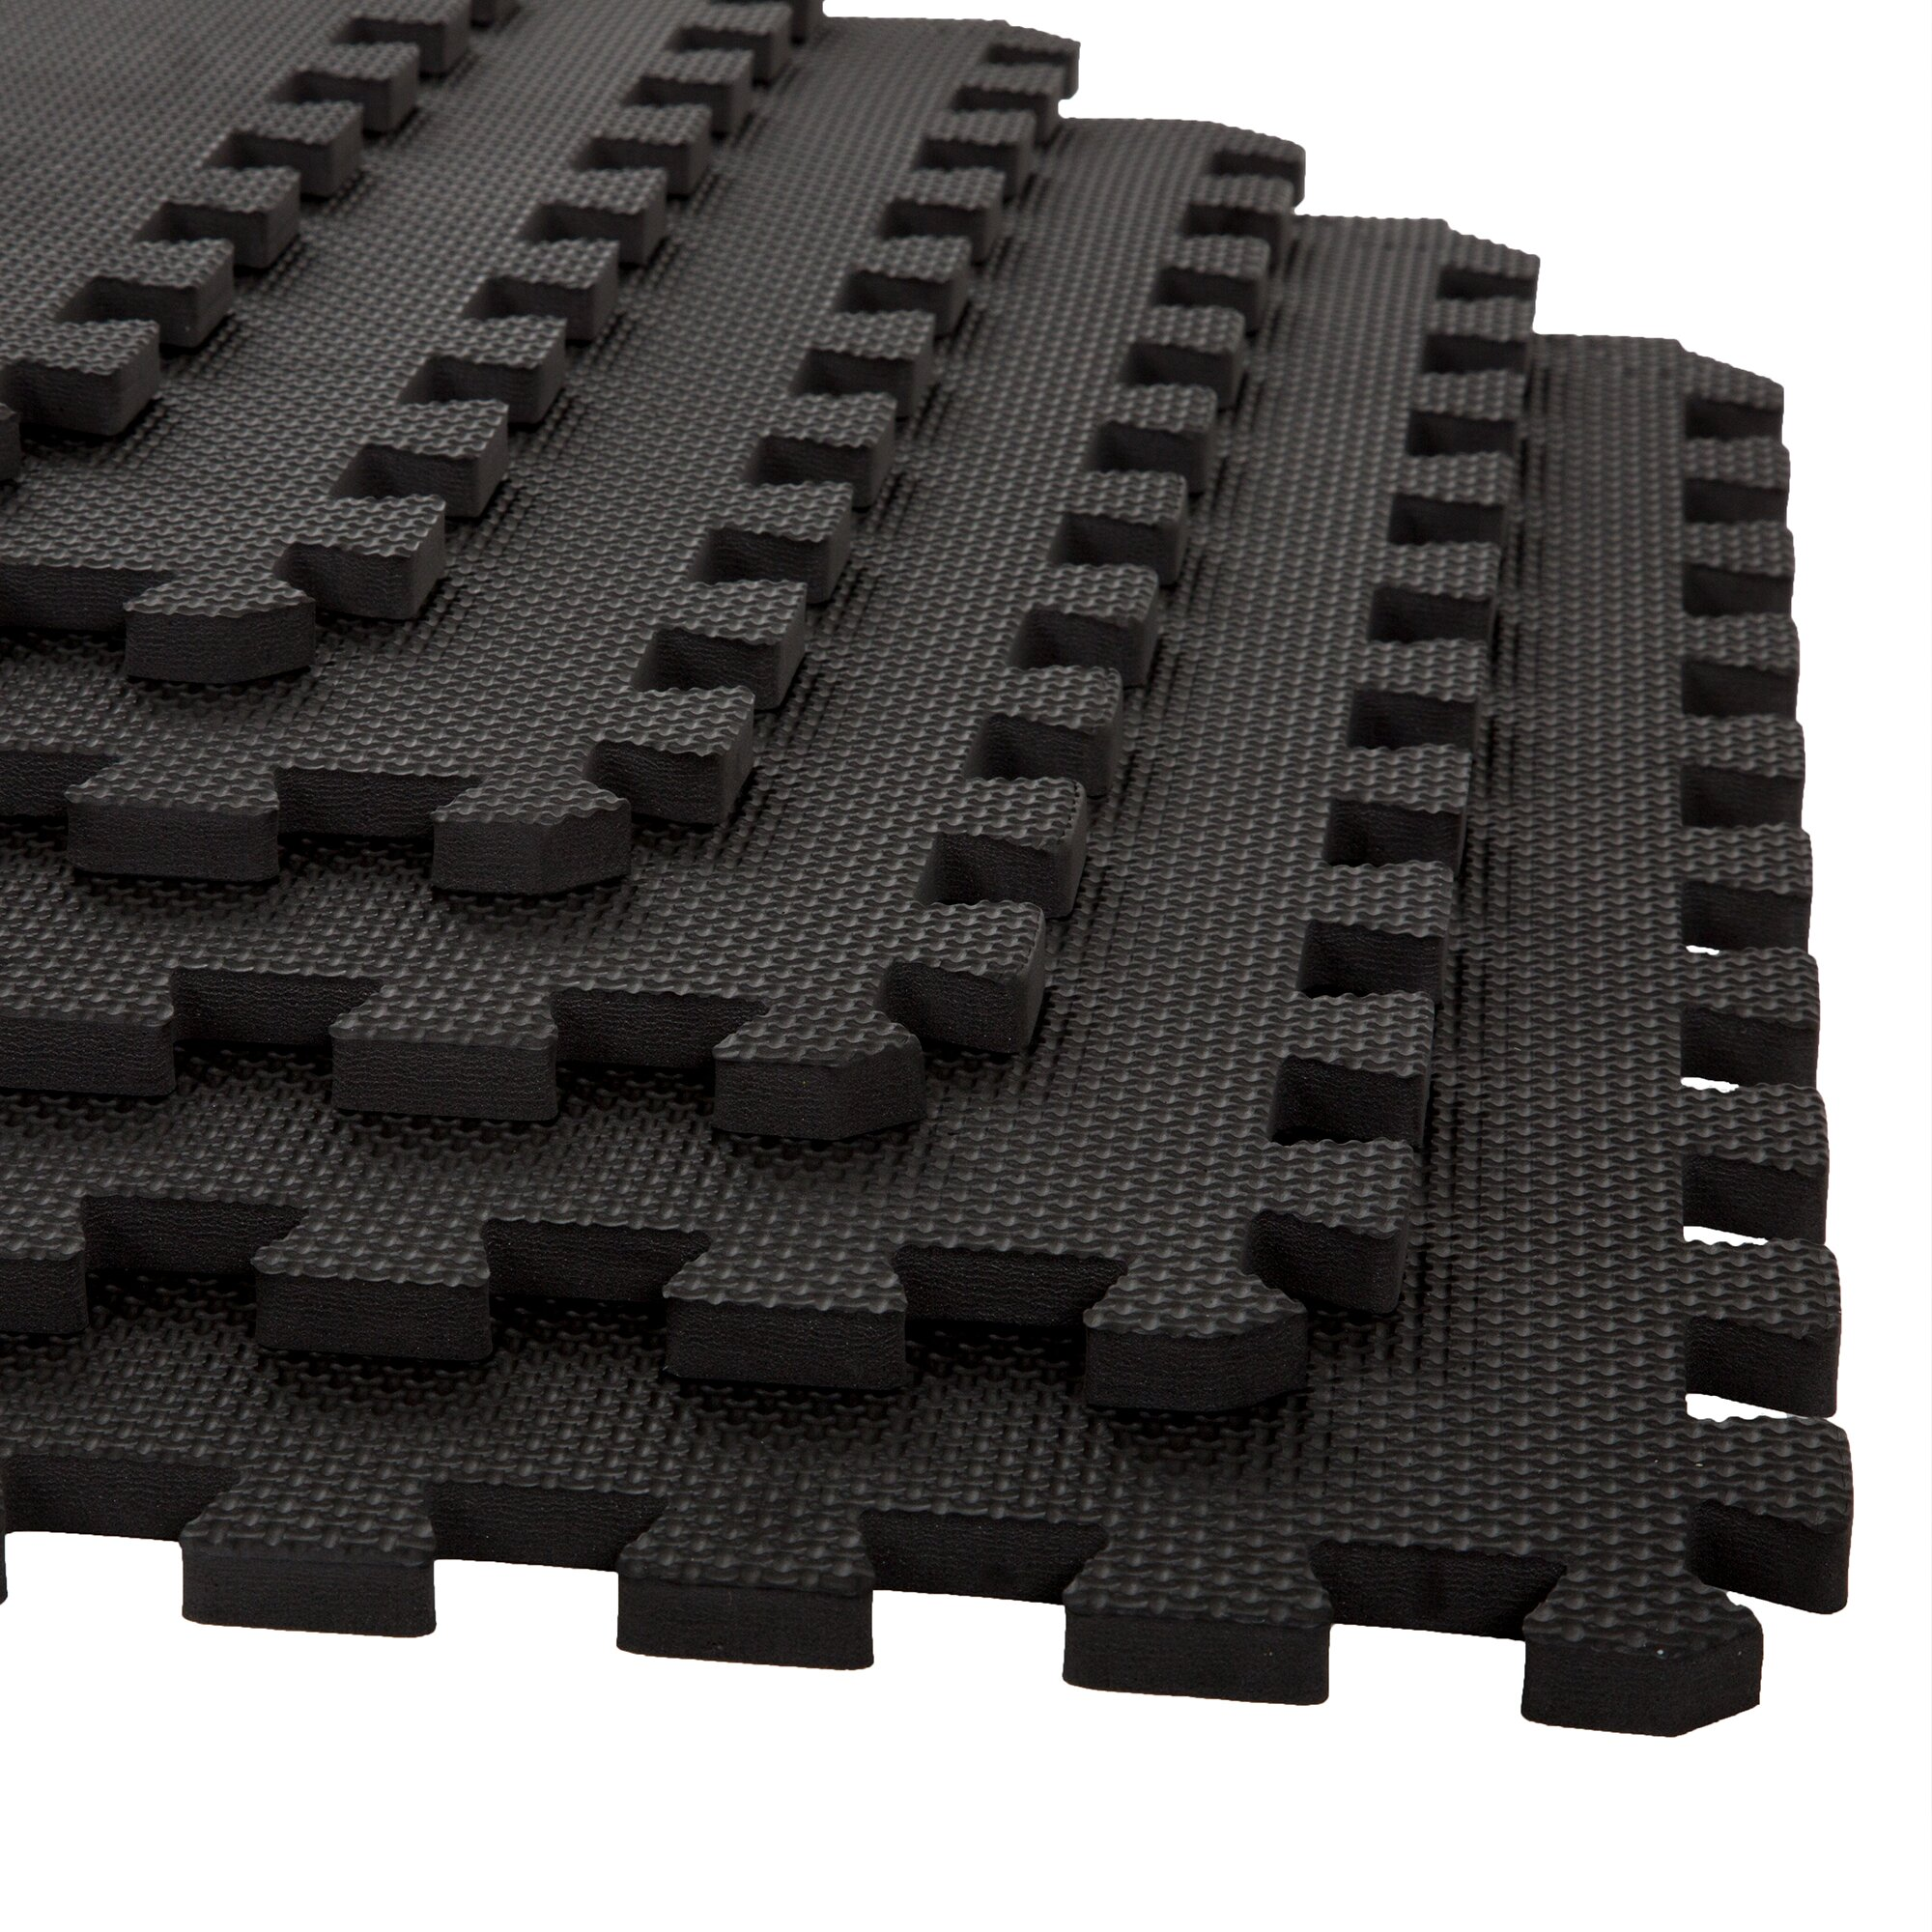 Stalwart Black Eva Foam Floor Mats Set Of 6 Amp Reviews